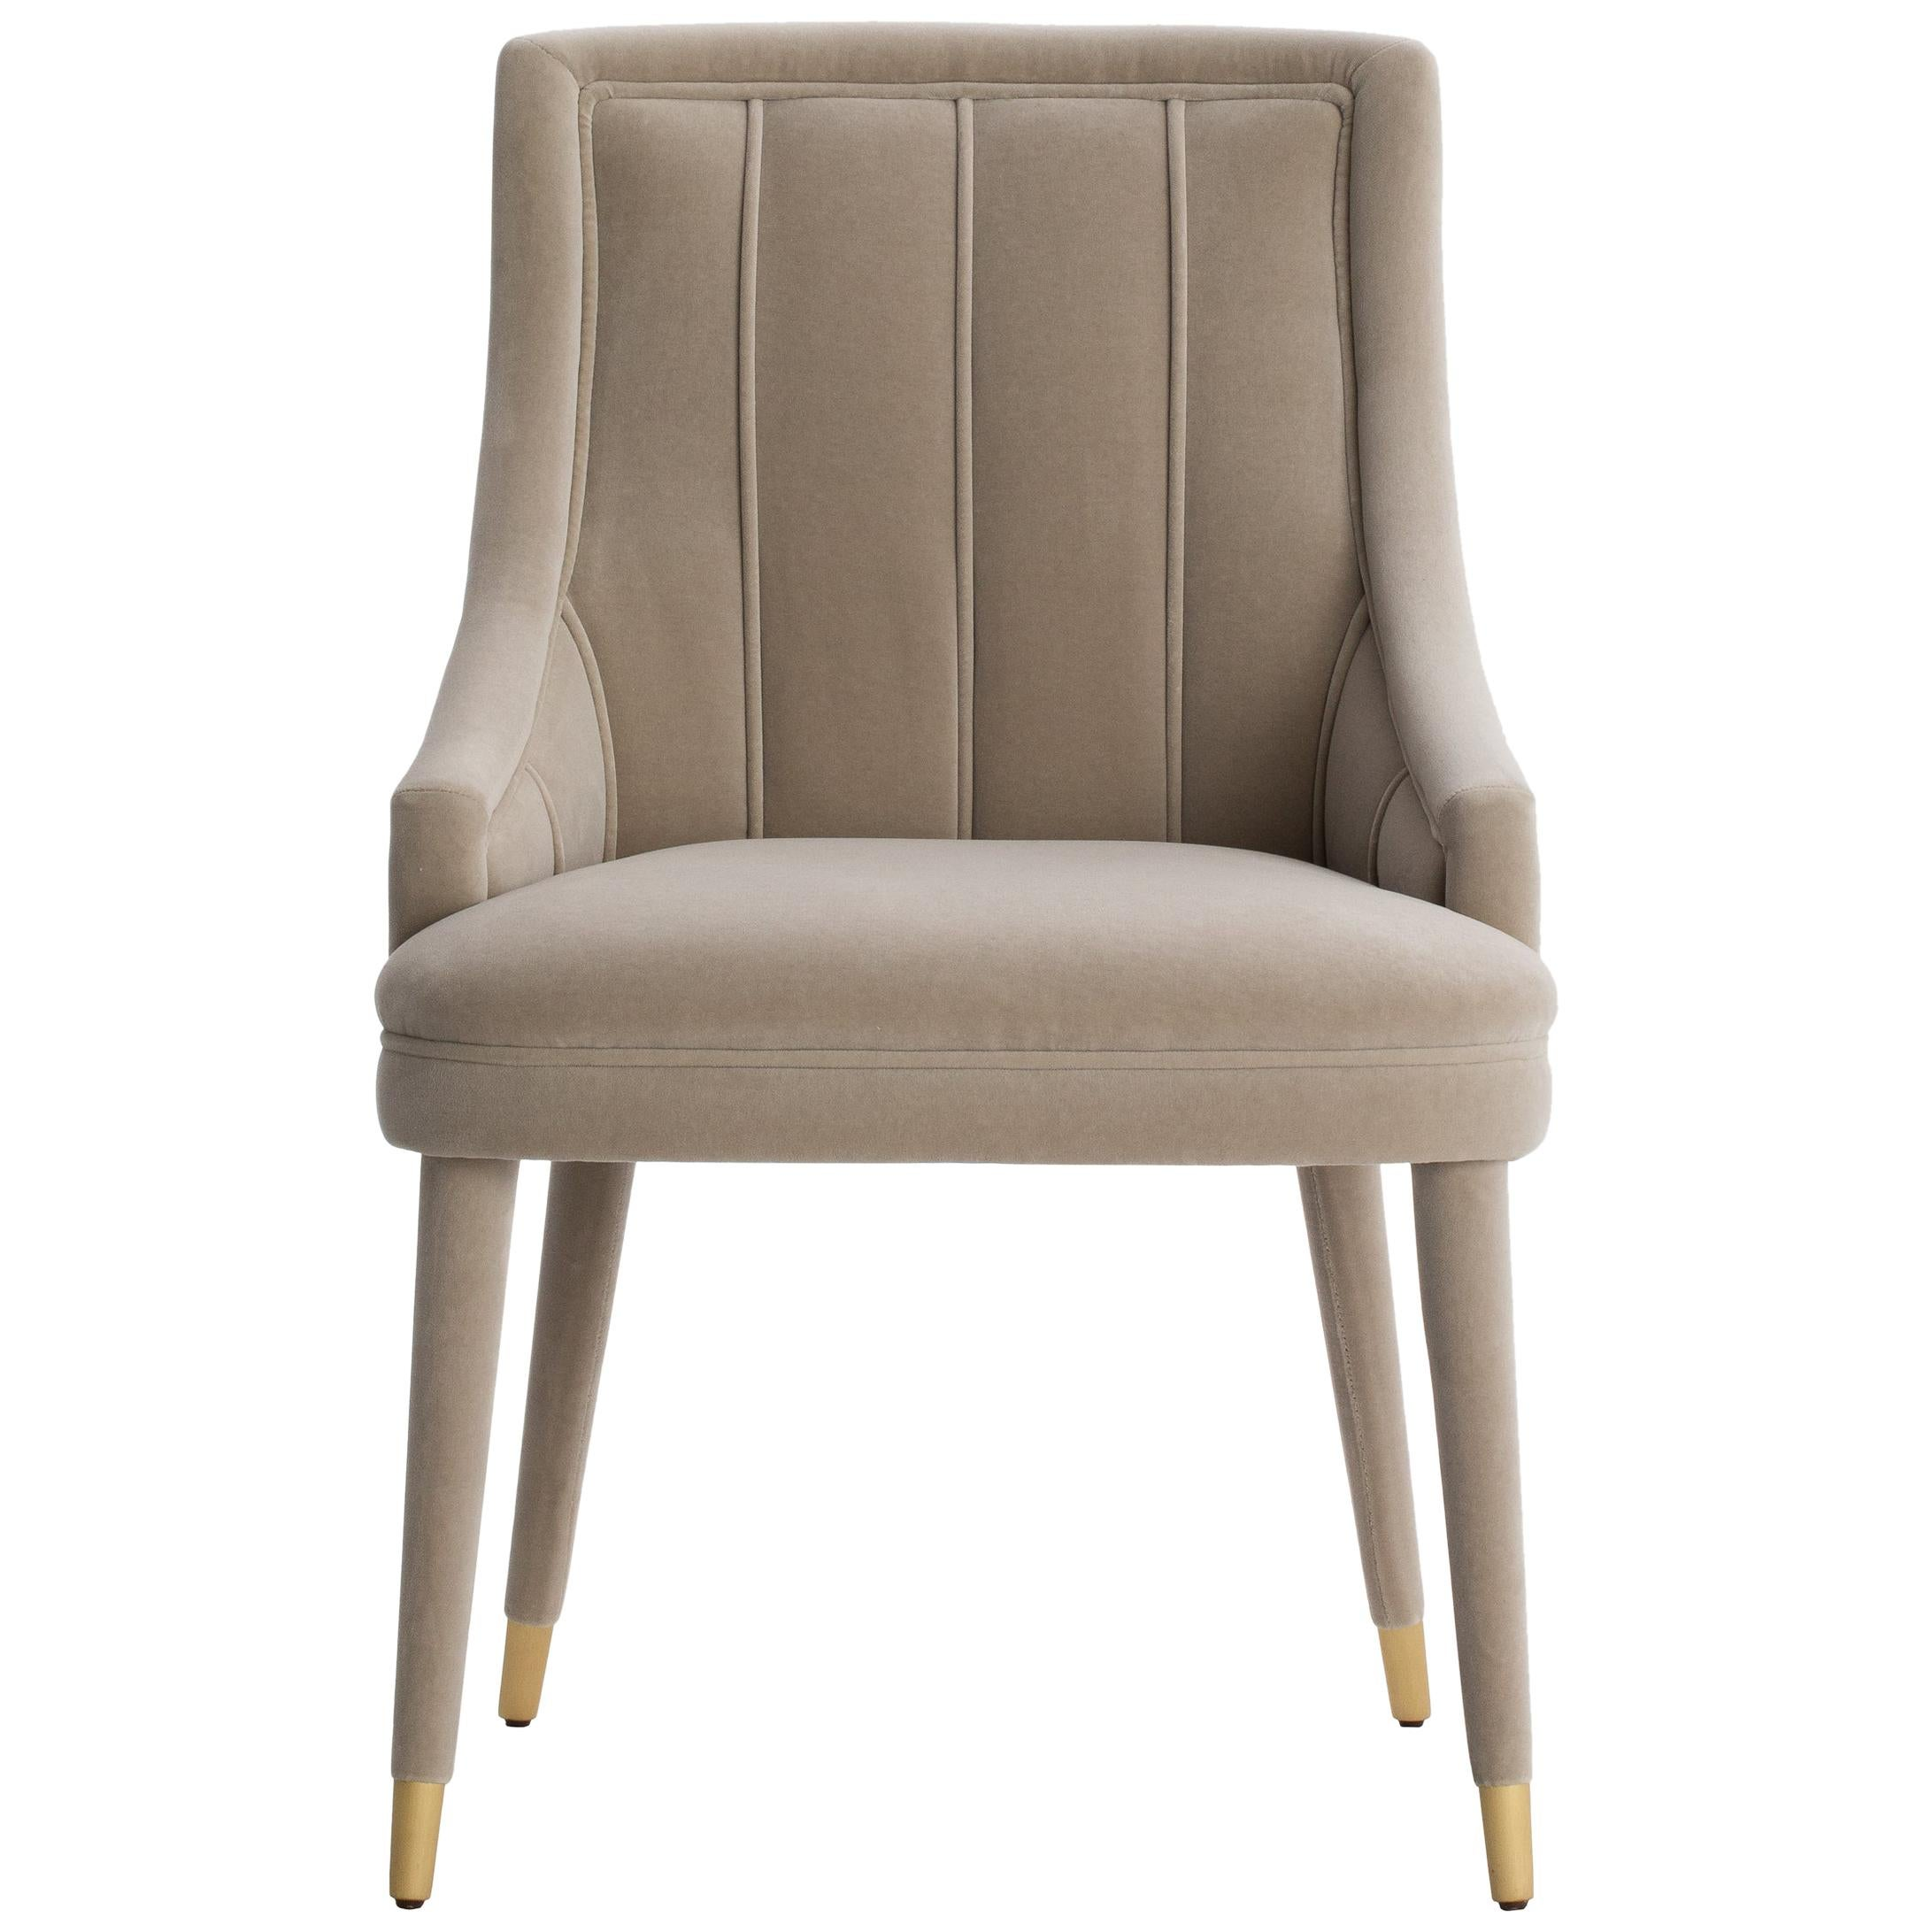 Cordoba Dining Chair with Upholstered Legs and Brushed Brass Tips